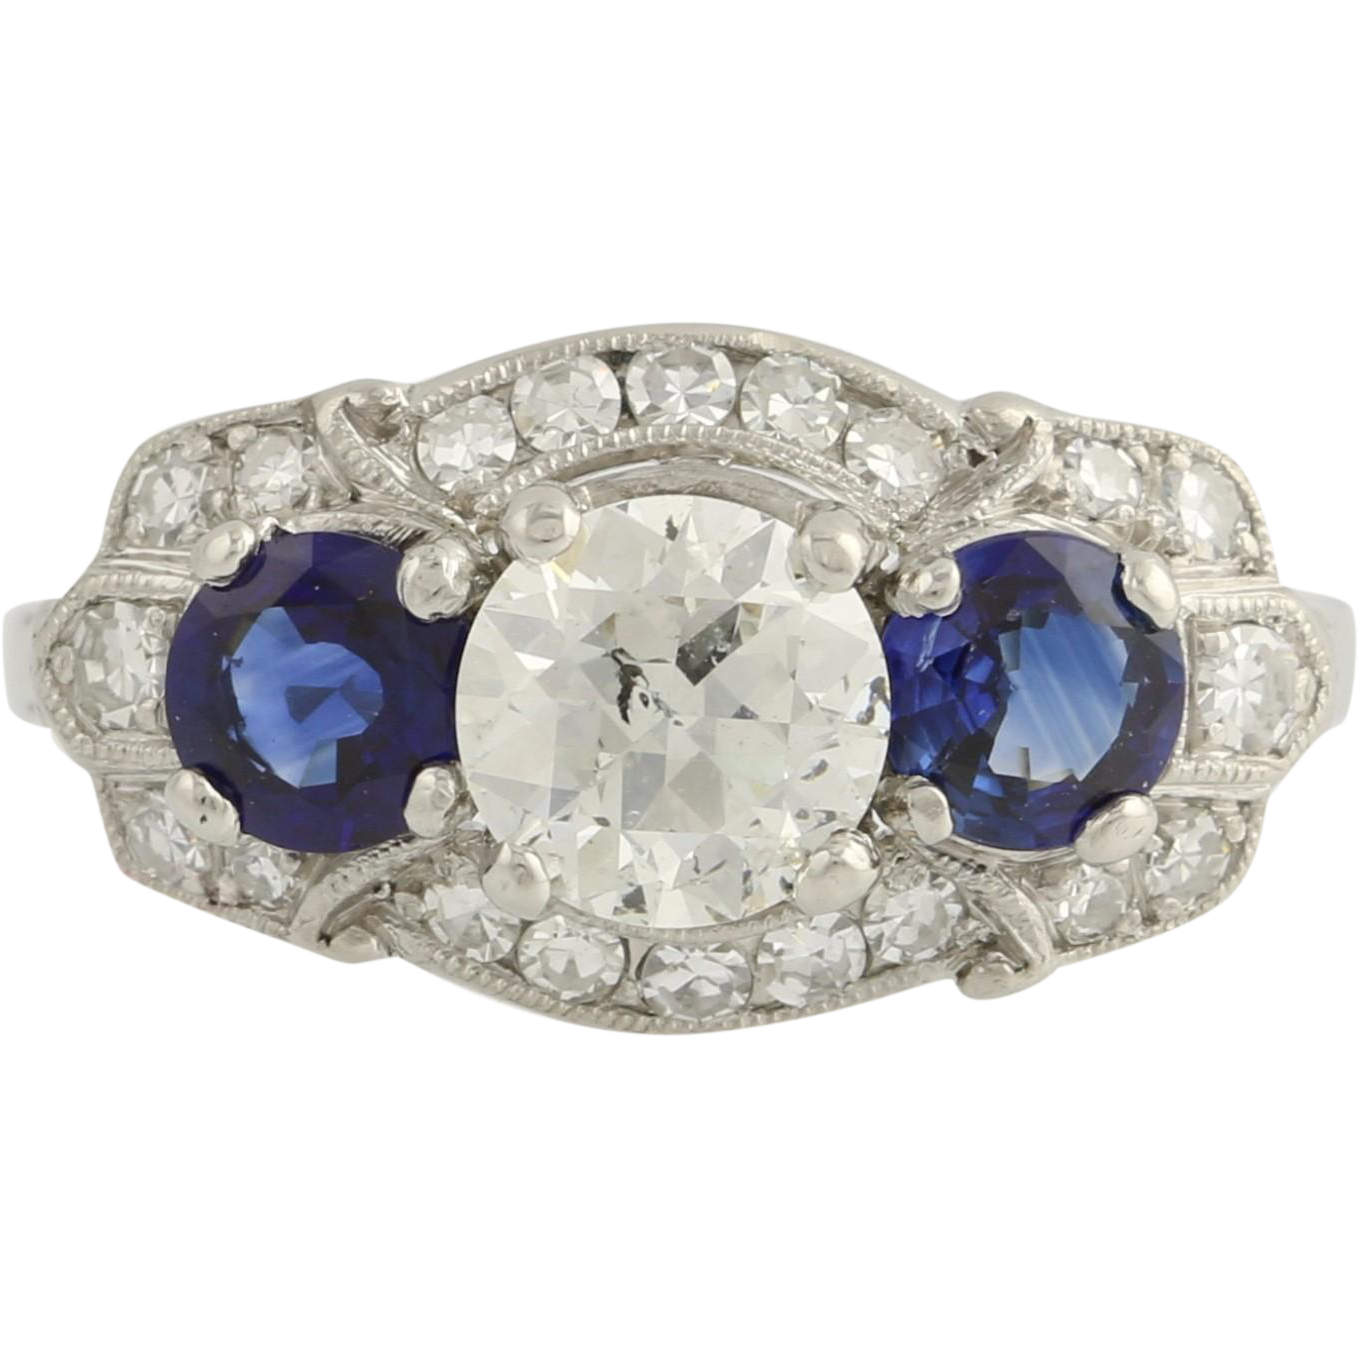 Art Deco Traub Sapphire & Diamond Cocktail Ring- Palladium 7 1/4 Genuine 2.35ctw Unique Engagement Ring